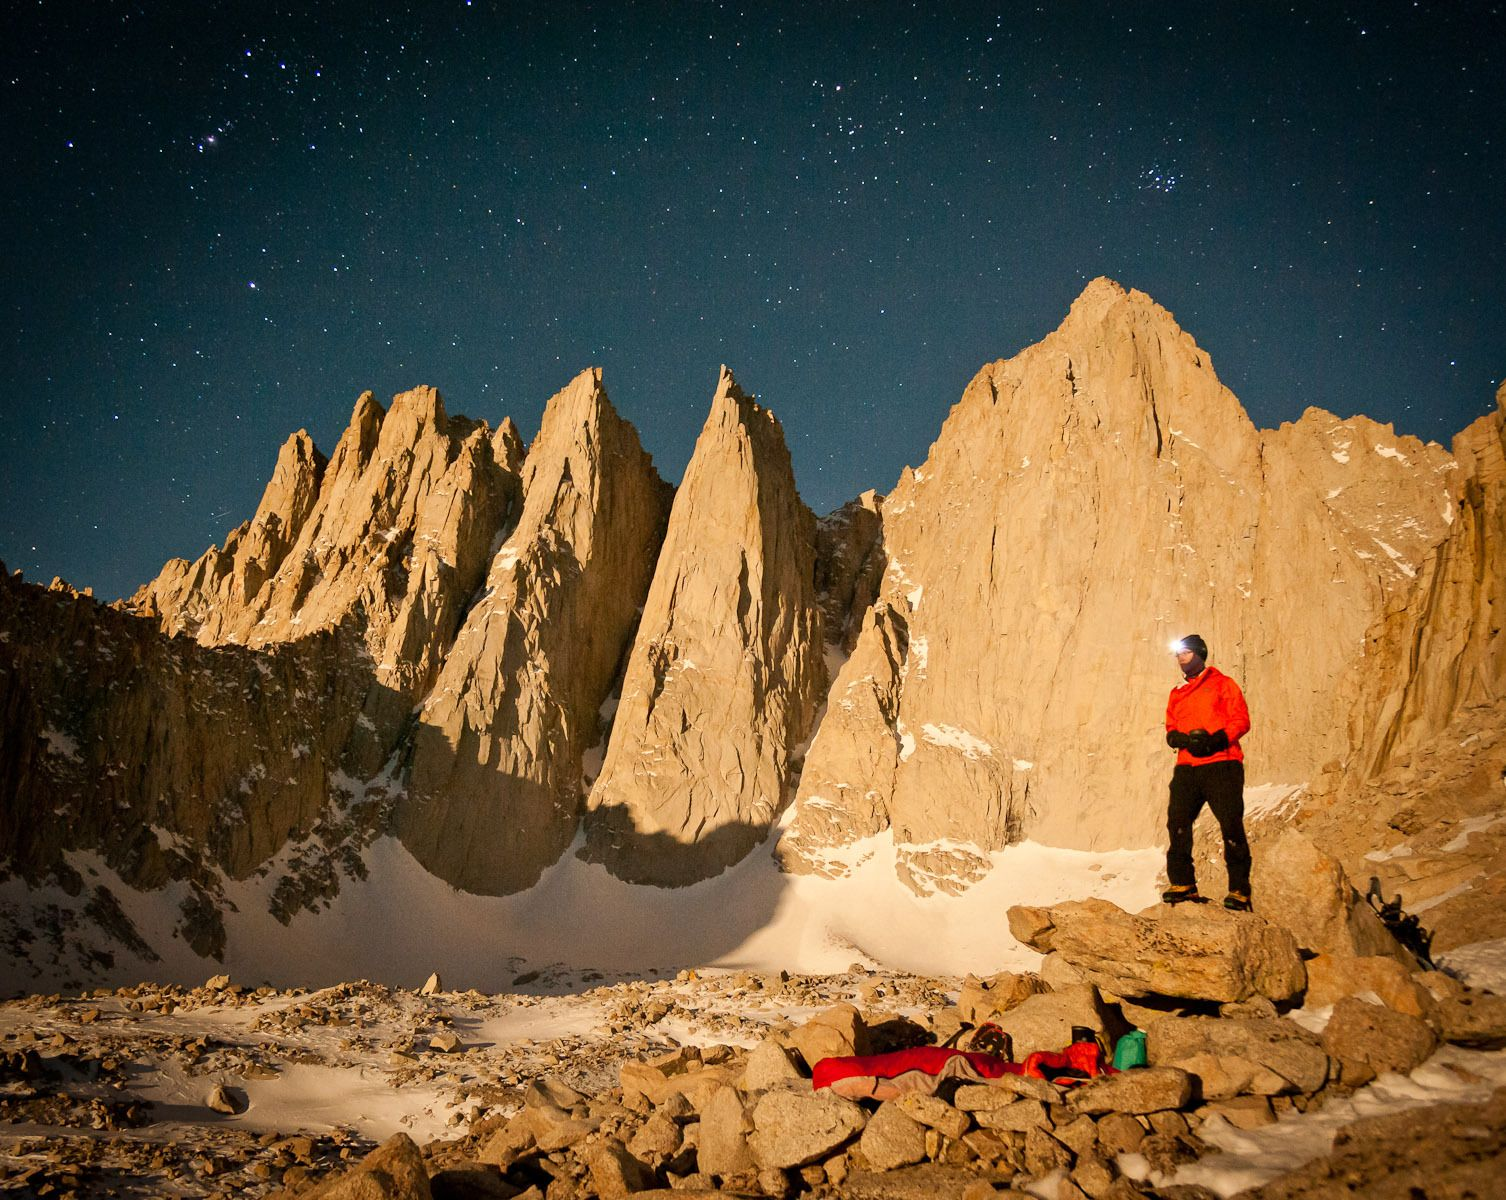 Climber Preparing for a Winter Bivy below the Mount Whitney Massif